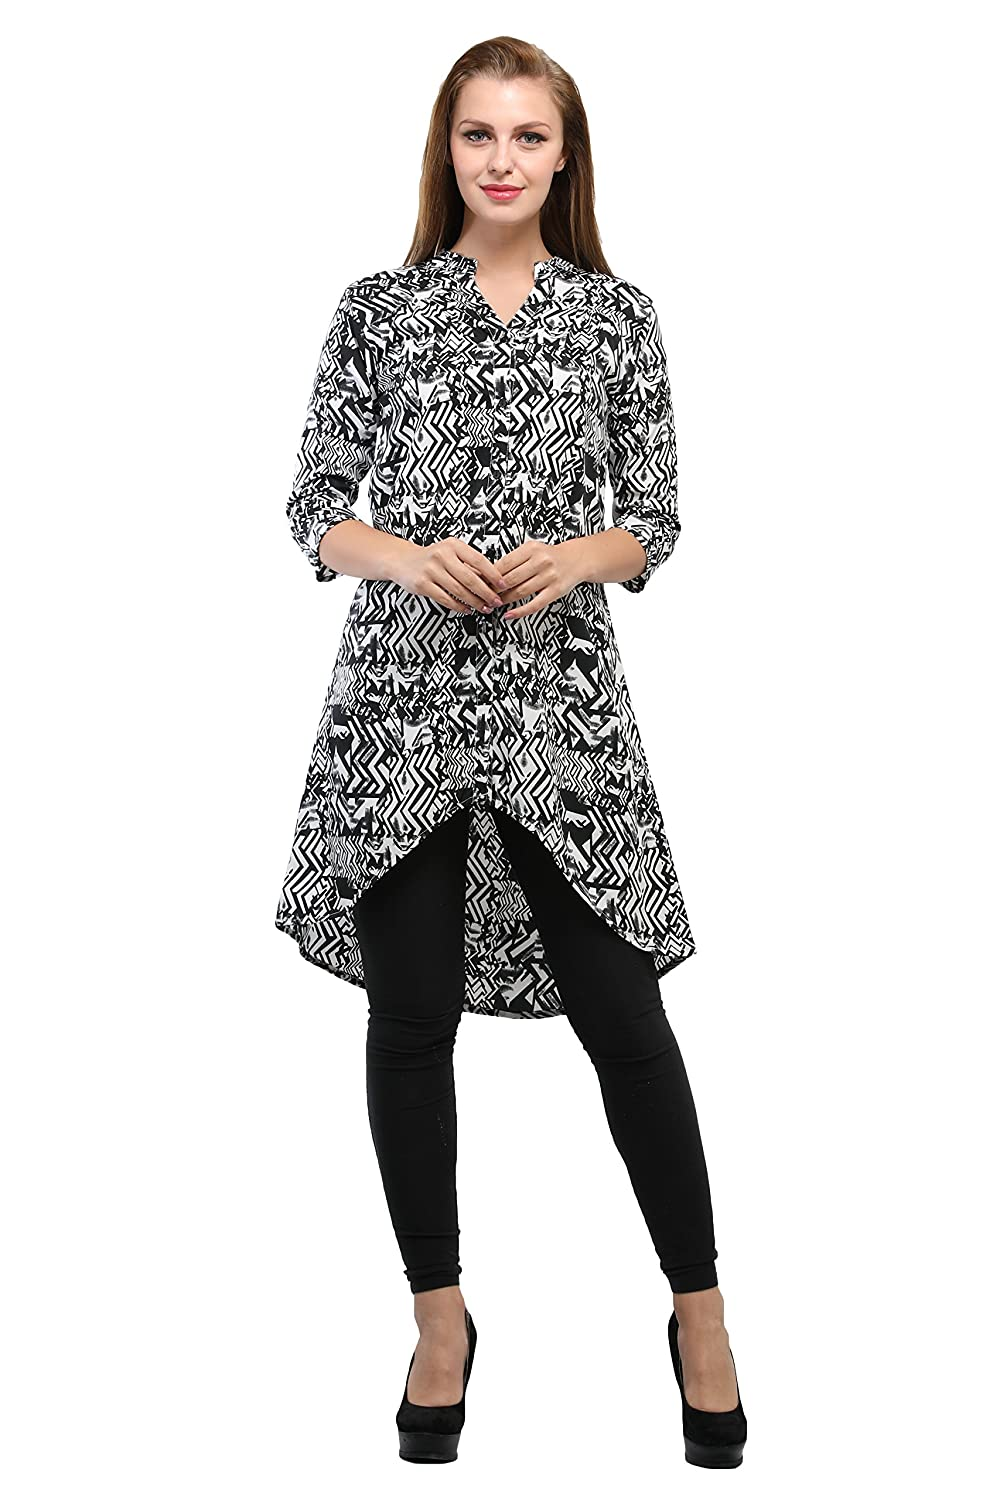 Toshee Women's Black and Multi Color High Low Printed Tunic Made in Crepe (TOS_1040)